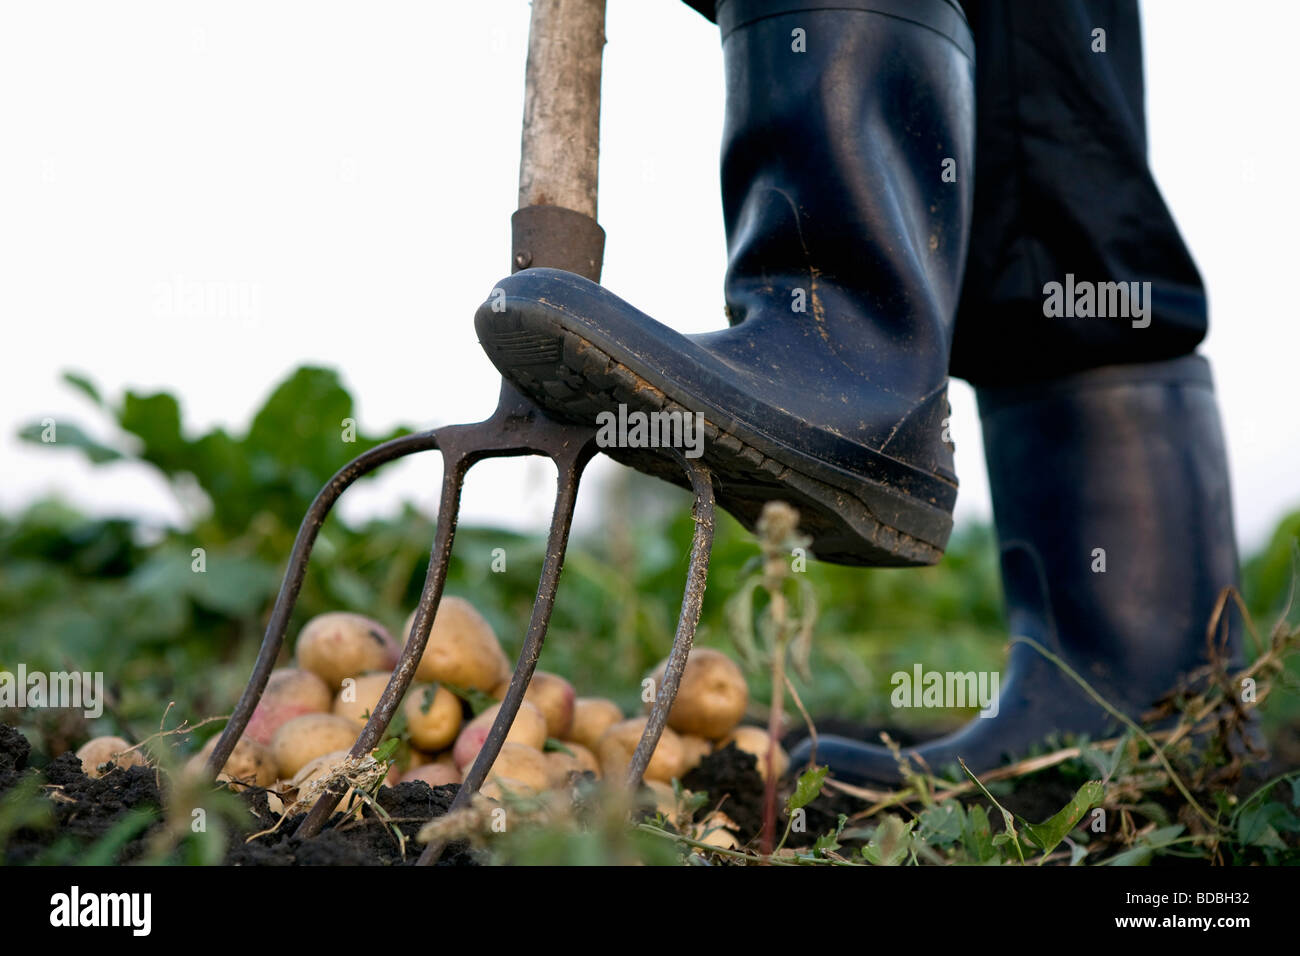 detail of farmer in rubber boots using pitchfork Stock Photo